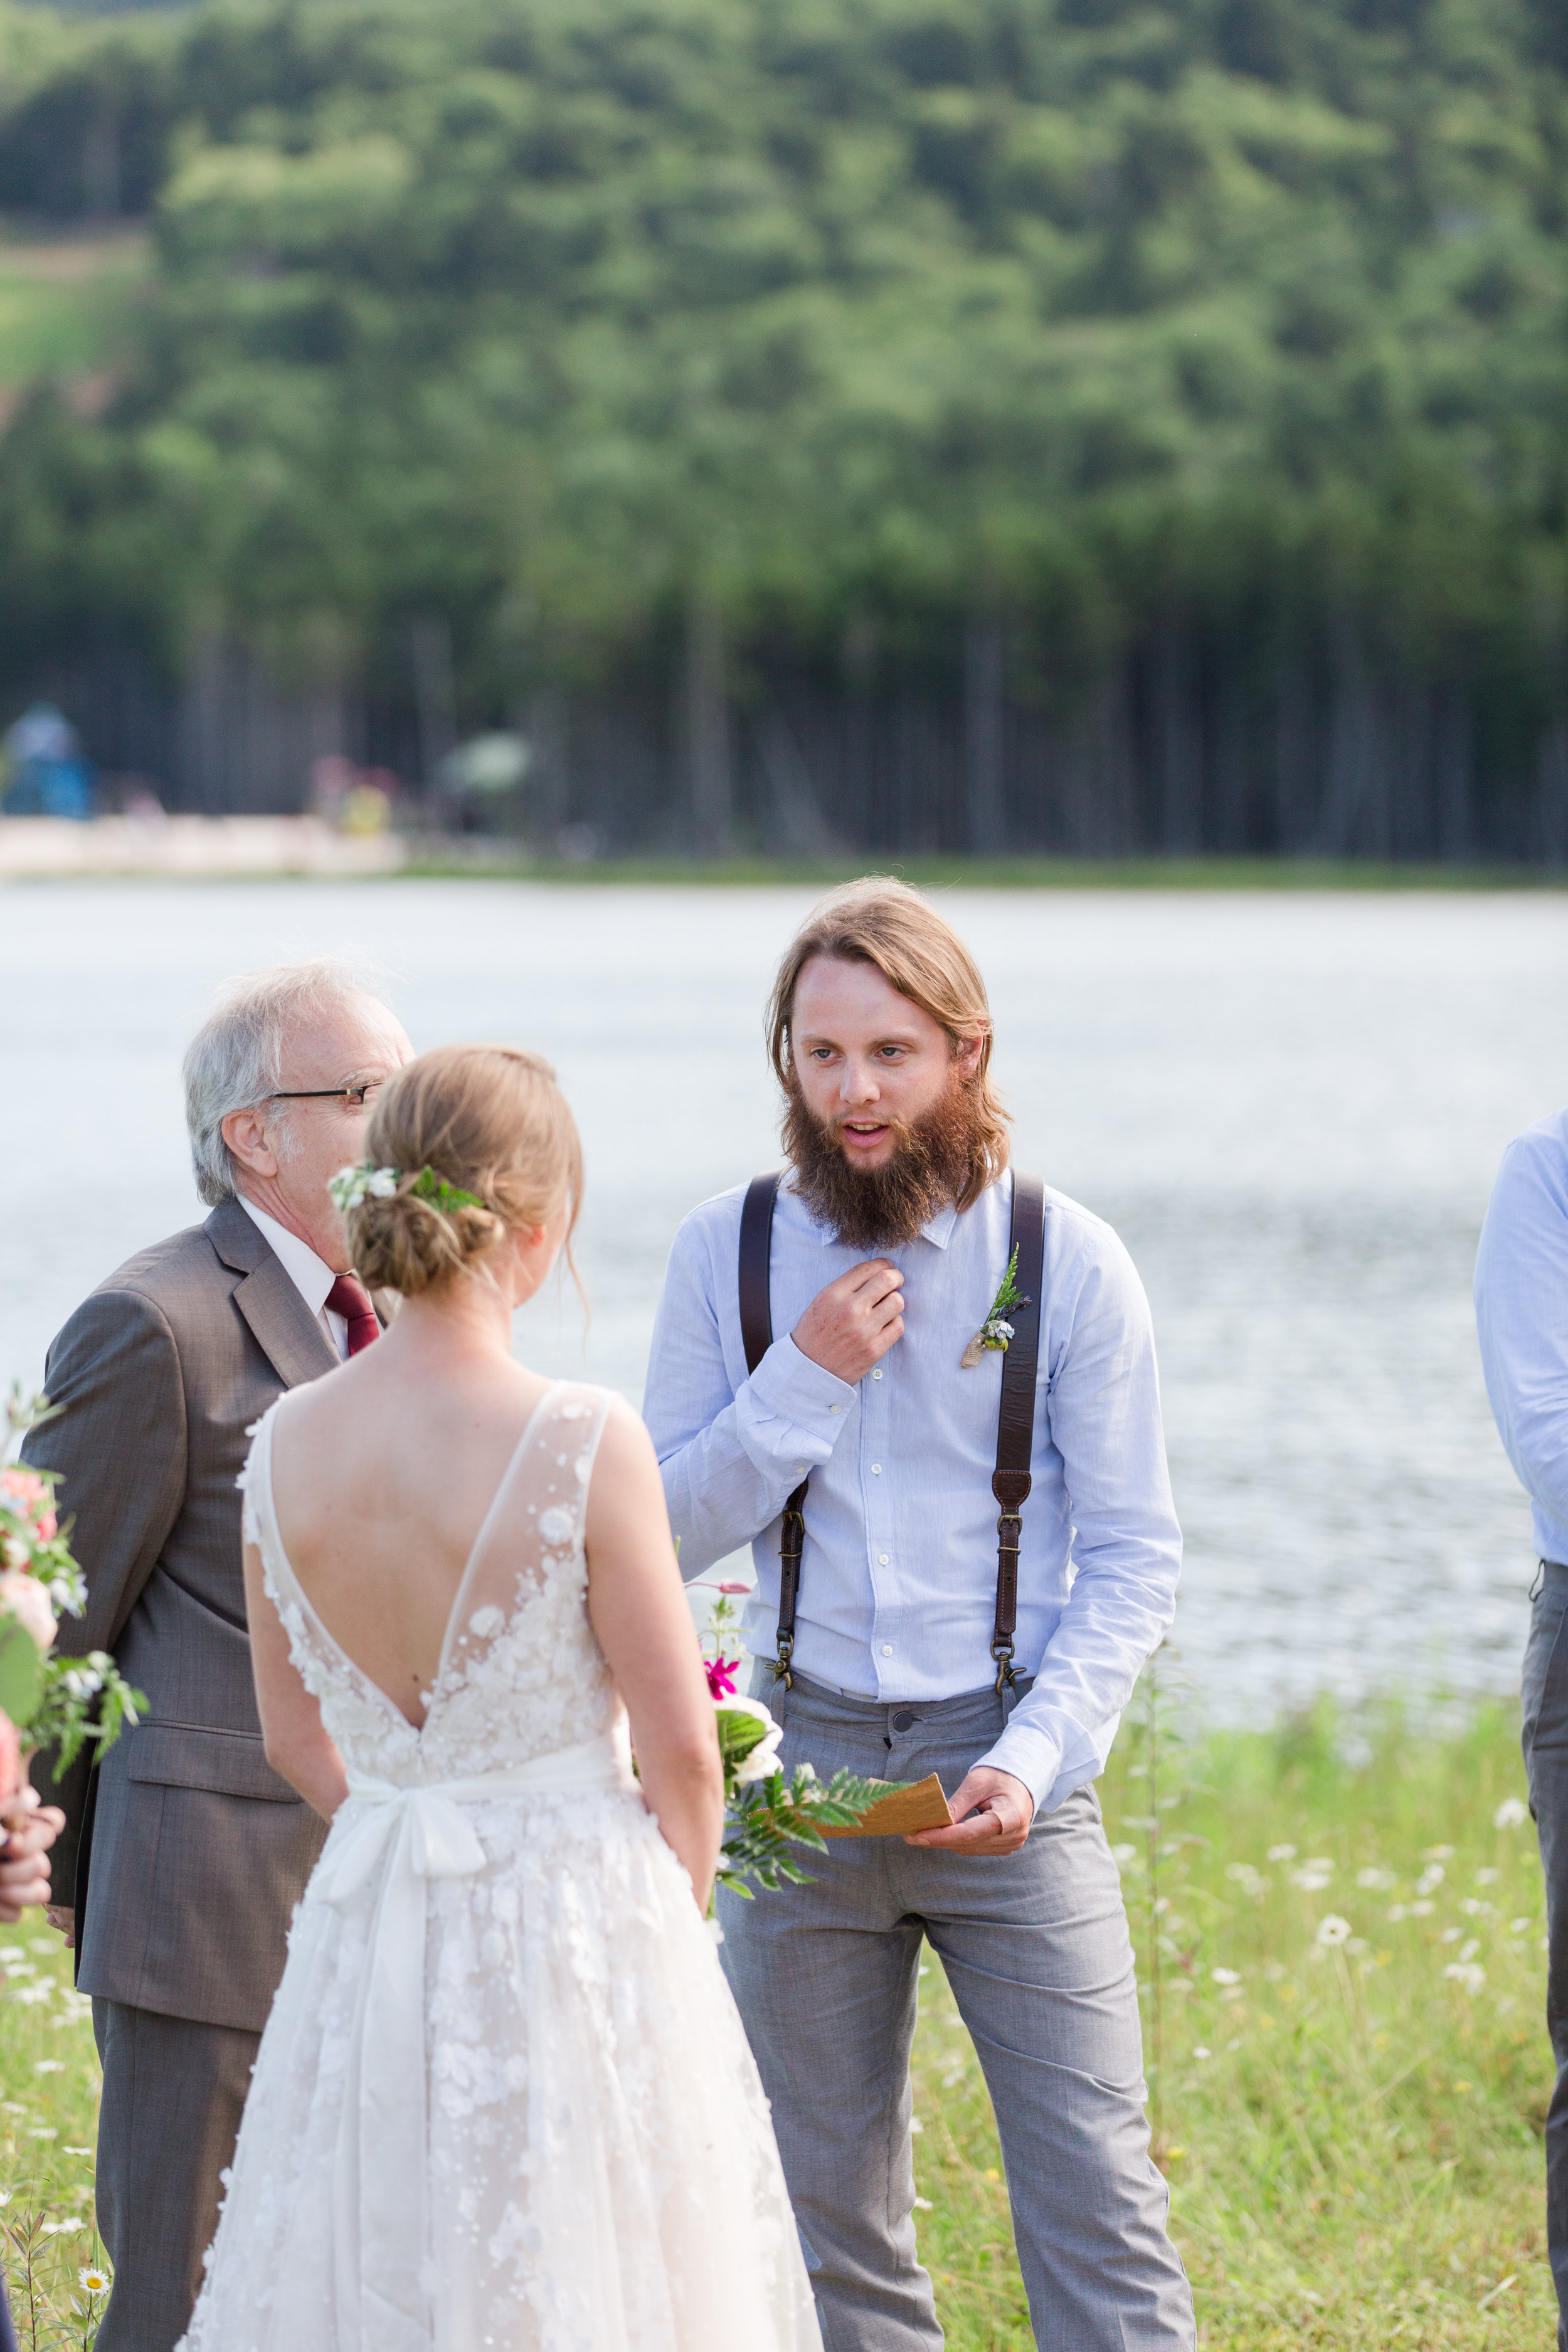 authentic genuine wedding photography in wv - groom's handwritten vows- lakeside mountain wedding wv